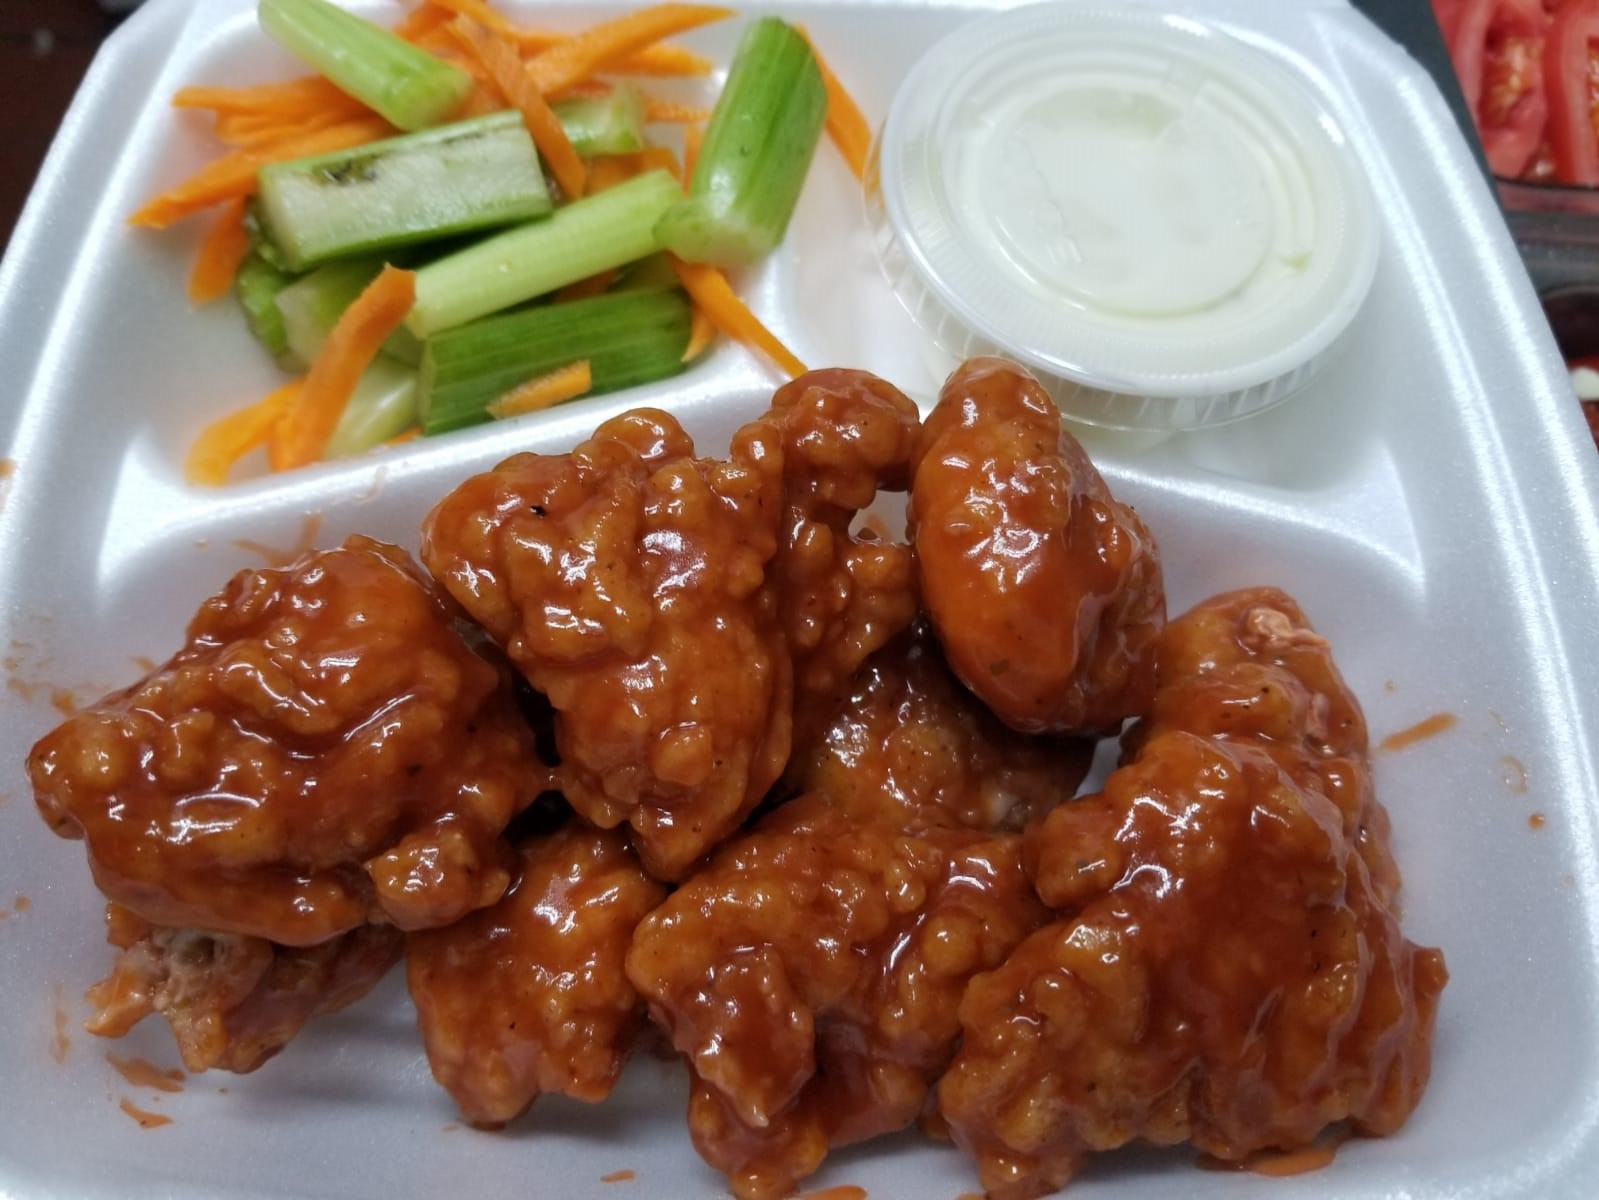 boneless chicken wings covered in sauce with a side of celery and shredded carrots